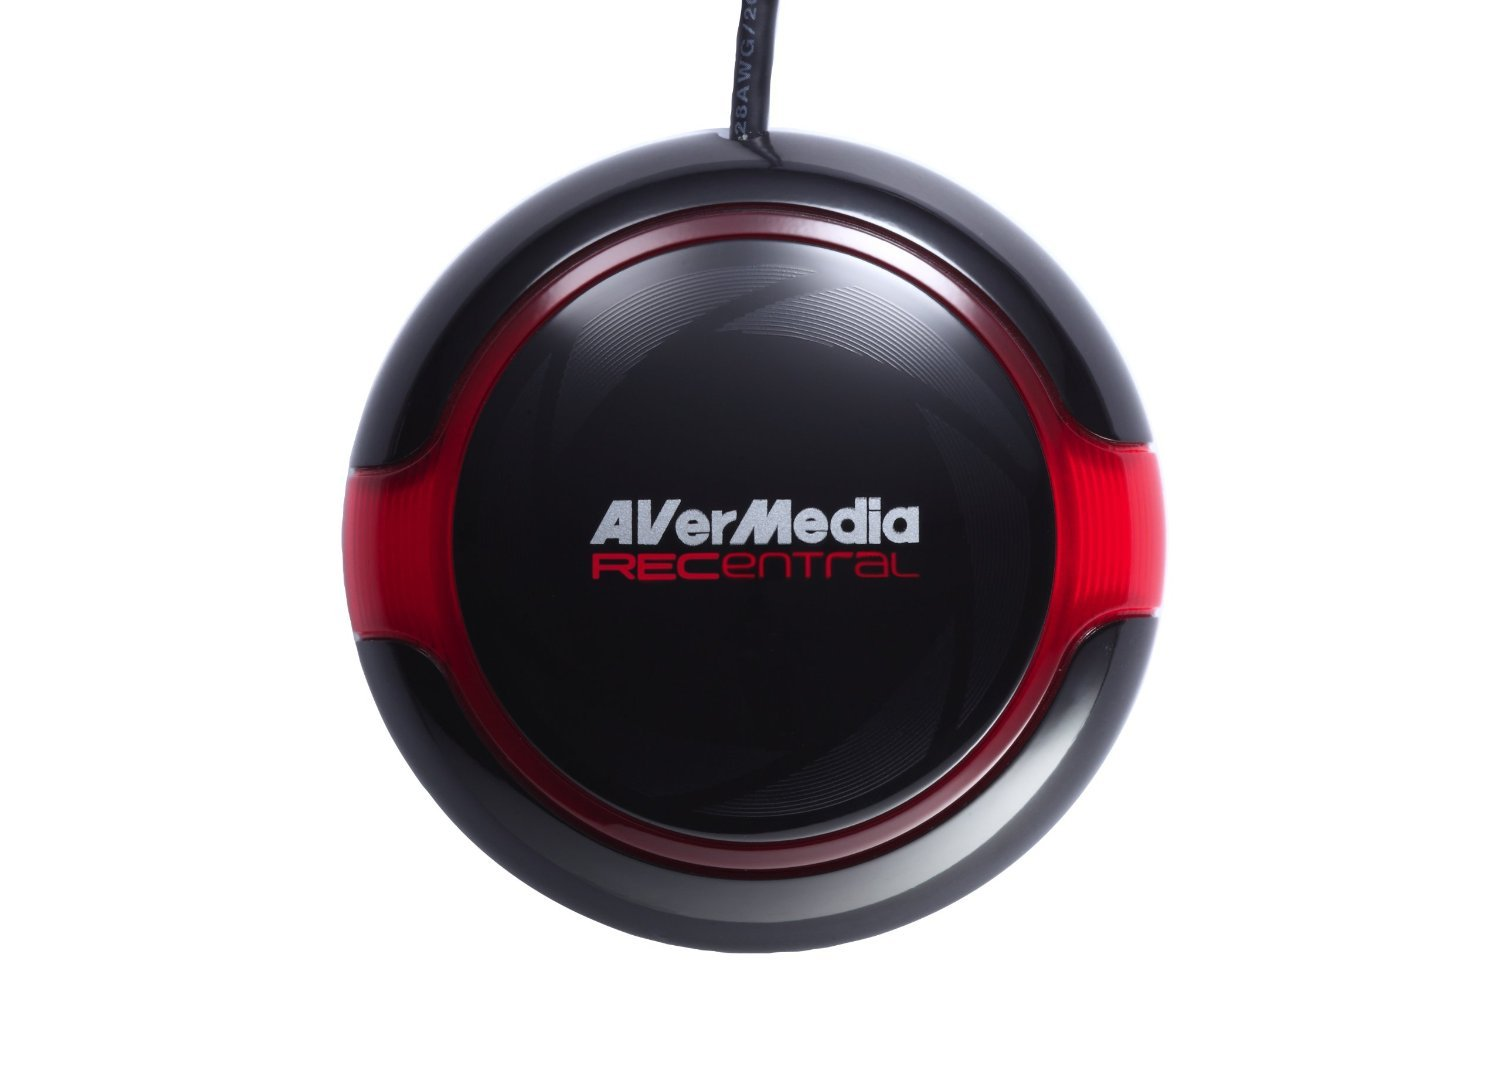 Amazon.com: AVerMedia Live Gamer HD (C985) - Capture and Stream PlayStation 4, Xbox One, Xbox 360, or Wii U Gameplay in Full HD 1080p: Computers & ...